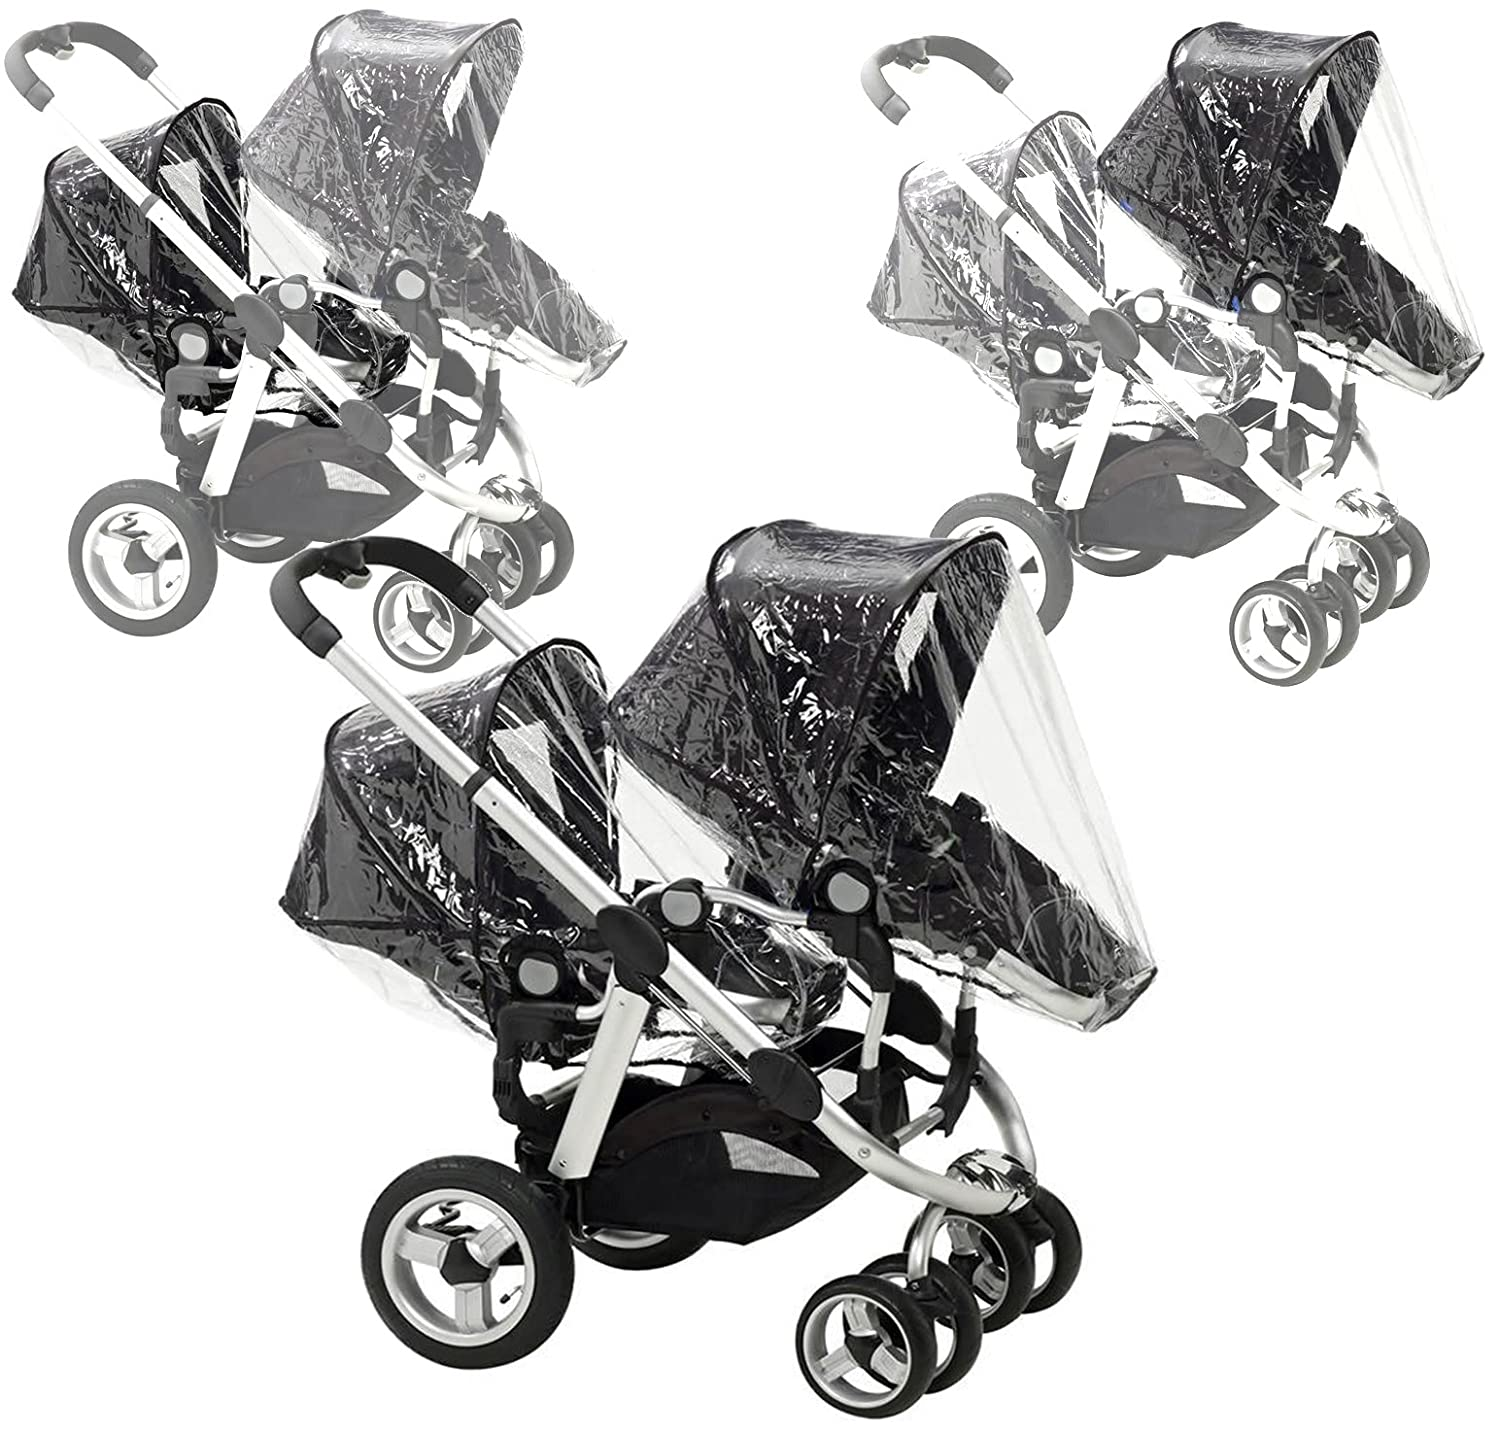 BTI iCANDY Peach x2 Rain Covers Fit Main Seat Unit & Second Seat When Tandem Mode Baby Travel